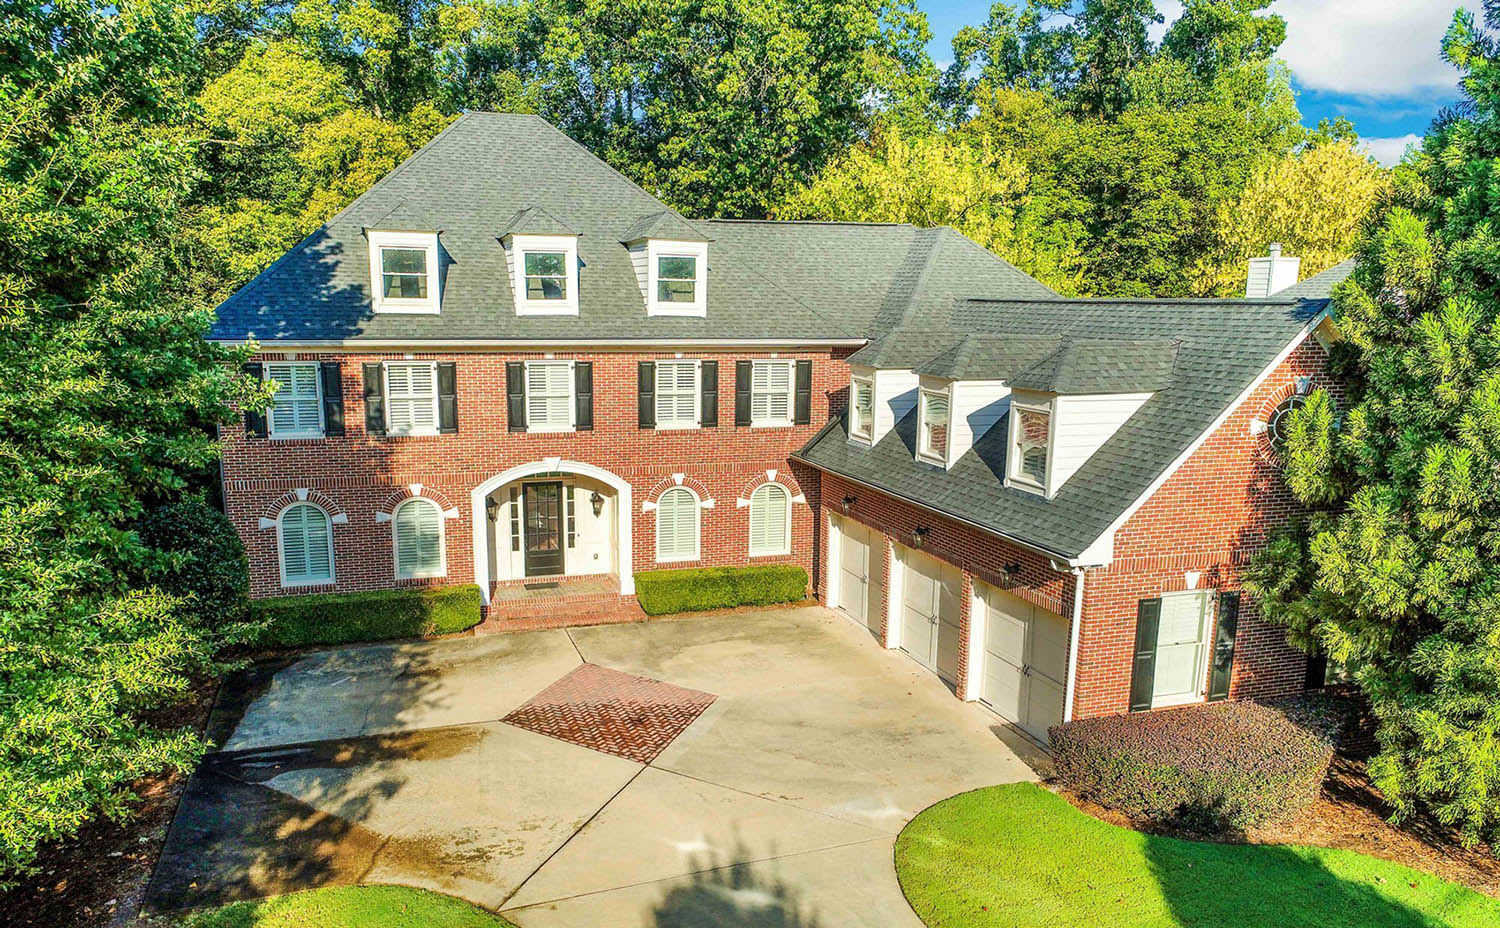 Beautiful red brick home with light tan garage doors and matching trim. Black front door and shutters.